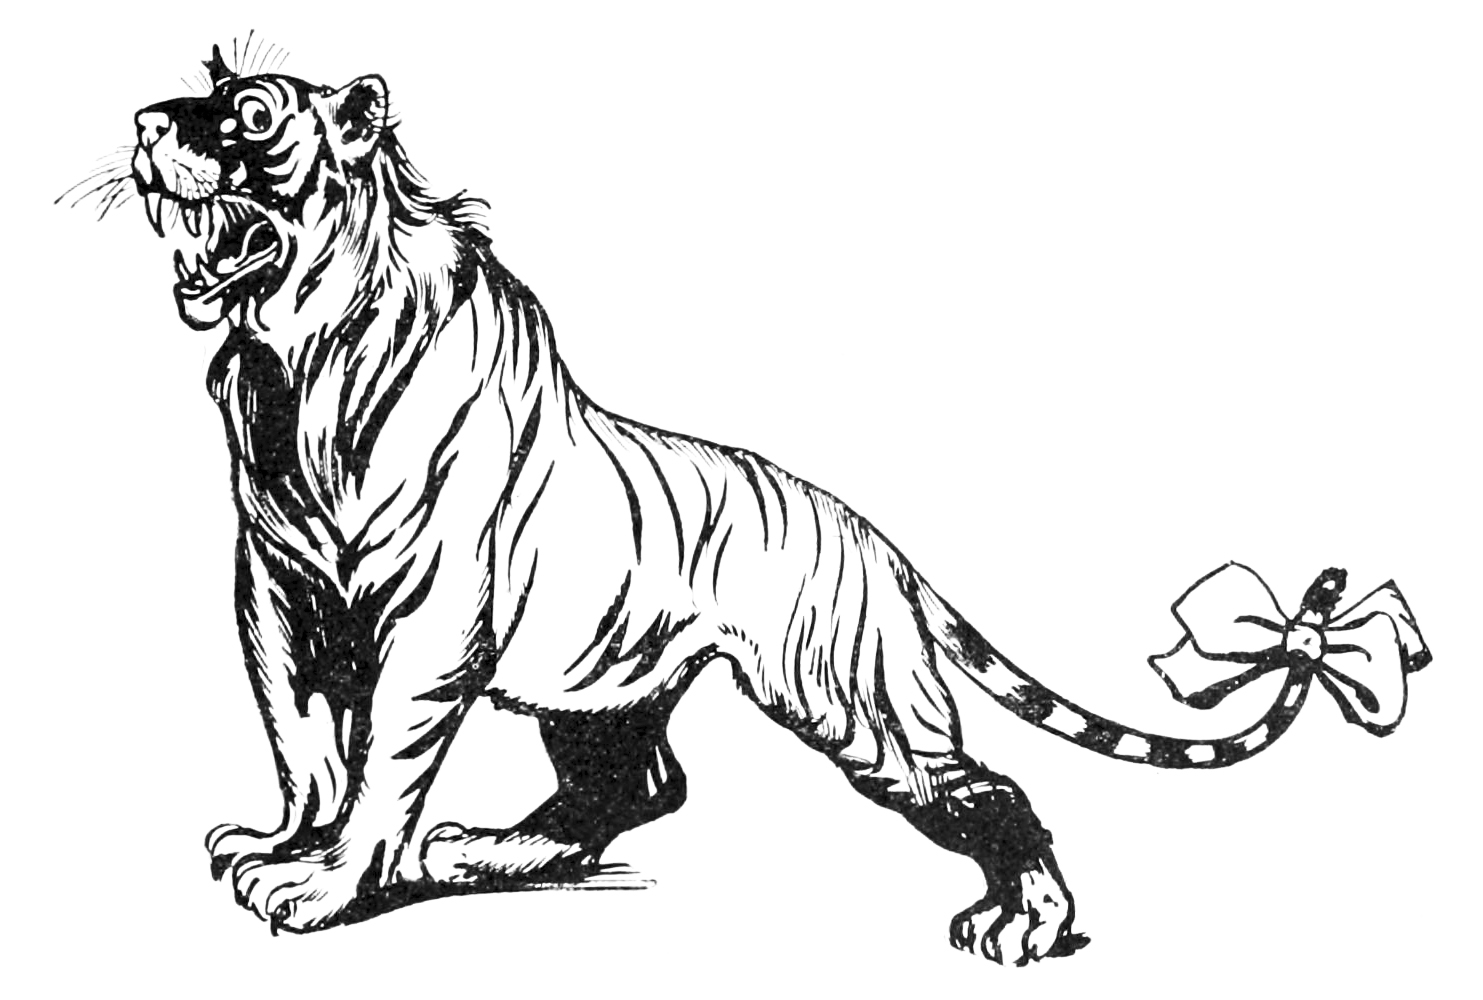 The Royal Blog Of Oz Characters Hungry Tiger Cowardly Lion After Ozma Had Dorothy Freed From Princess Langwideres Tower She Went To Get Billina But On Her Way Out Ran Into Old Friend